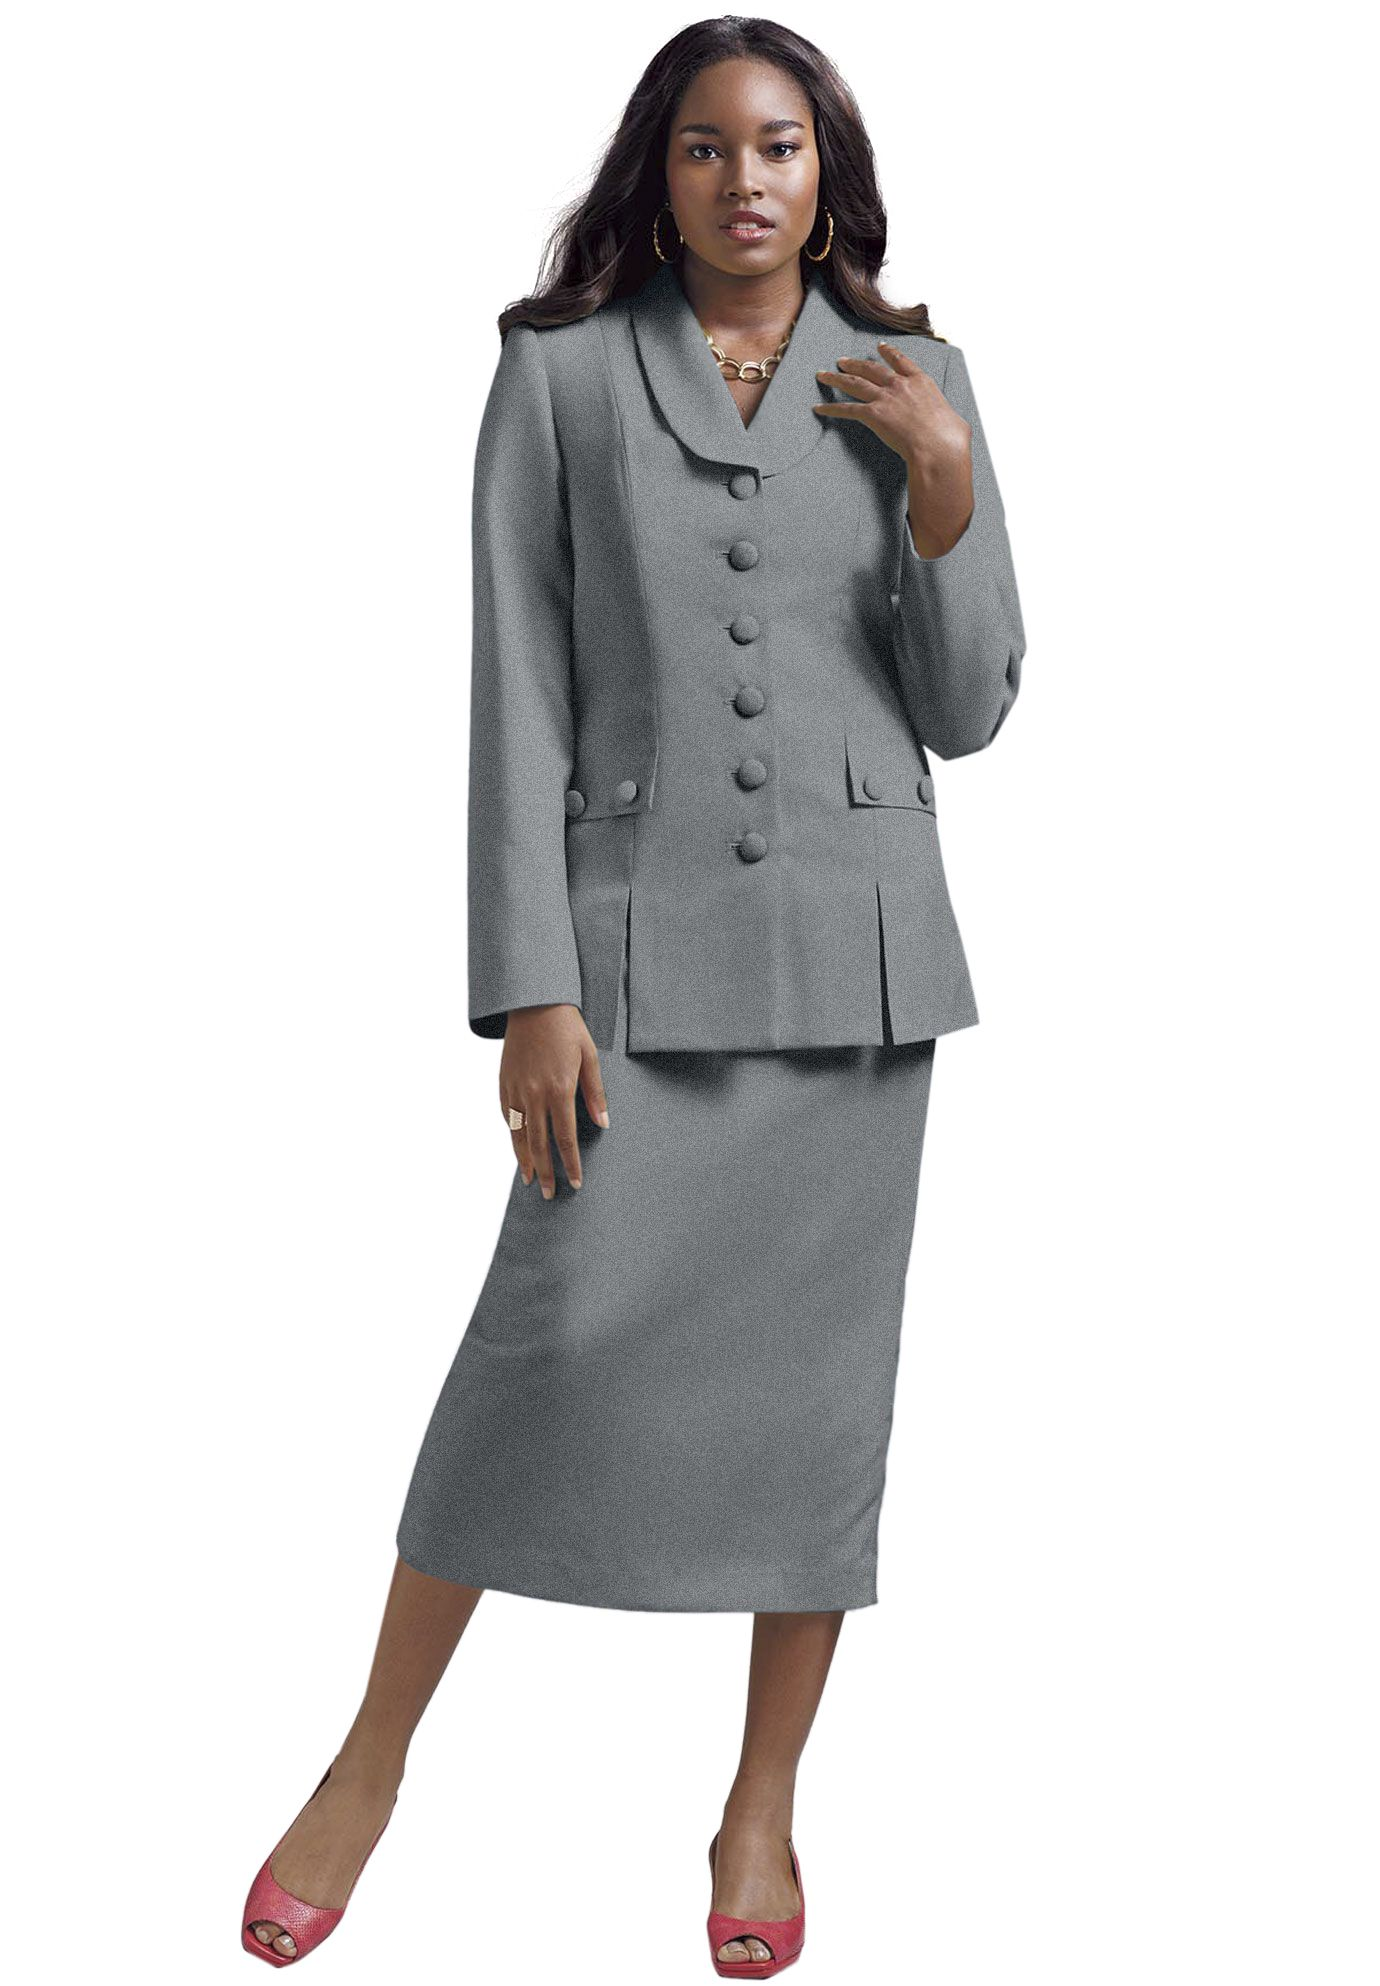 plus size grey interview suit now just go your job at plus size grey interview suit now just go your job at firstjob com